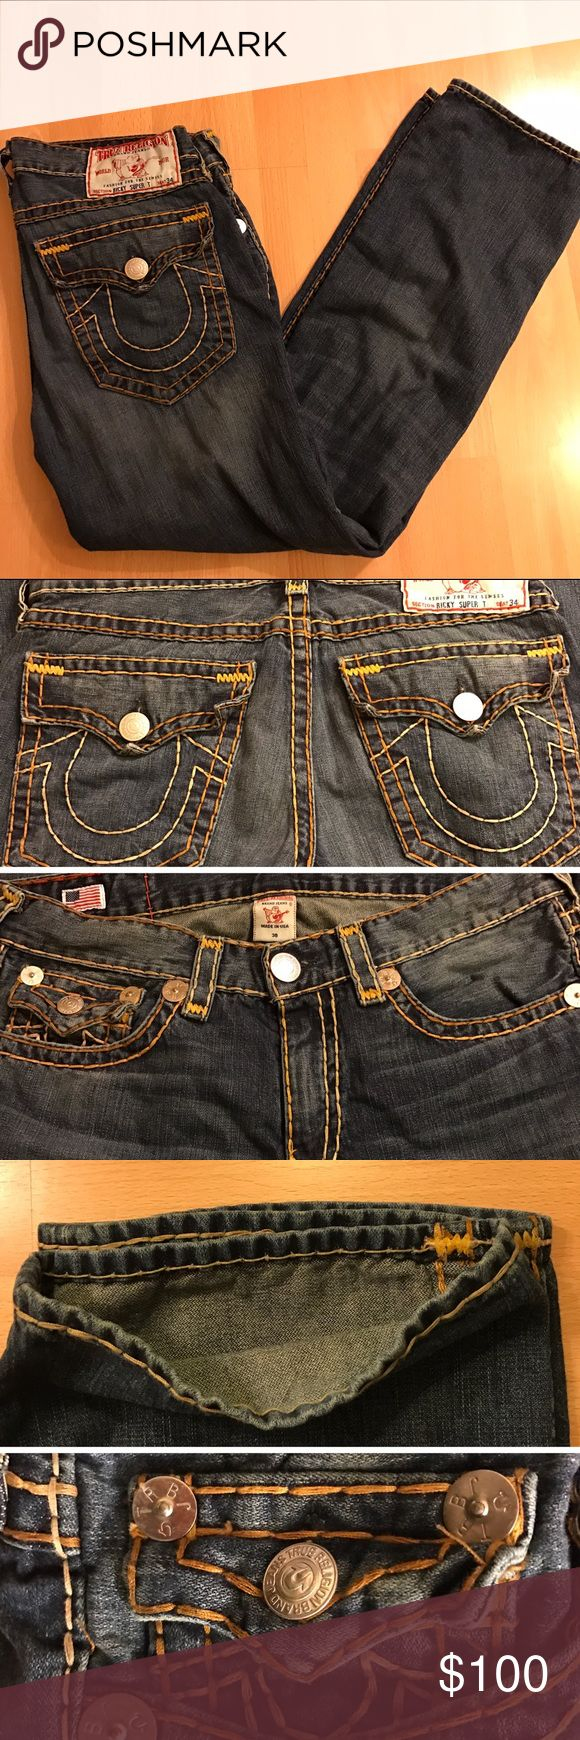 True Religion Ricky Super T Jeans For sale is a lightly used pair of True Religion jeans in the Ricky straight style. Blue denim with faded color style around the knee area. Super T stitching in a high contrast gold and orange style. Folding on back pockets due to how jeans were kept in storage. Pants length is 32 inches from crotch to bottom hem. Message if any questions. True Religion Jeans Straight